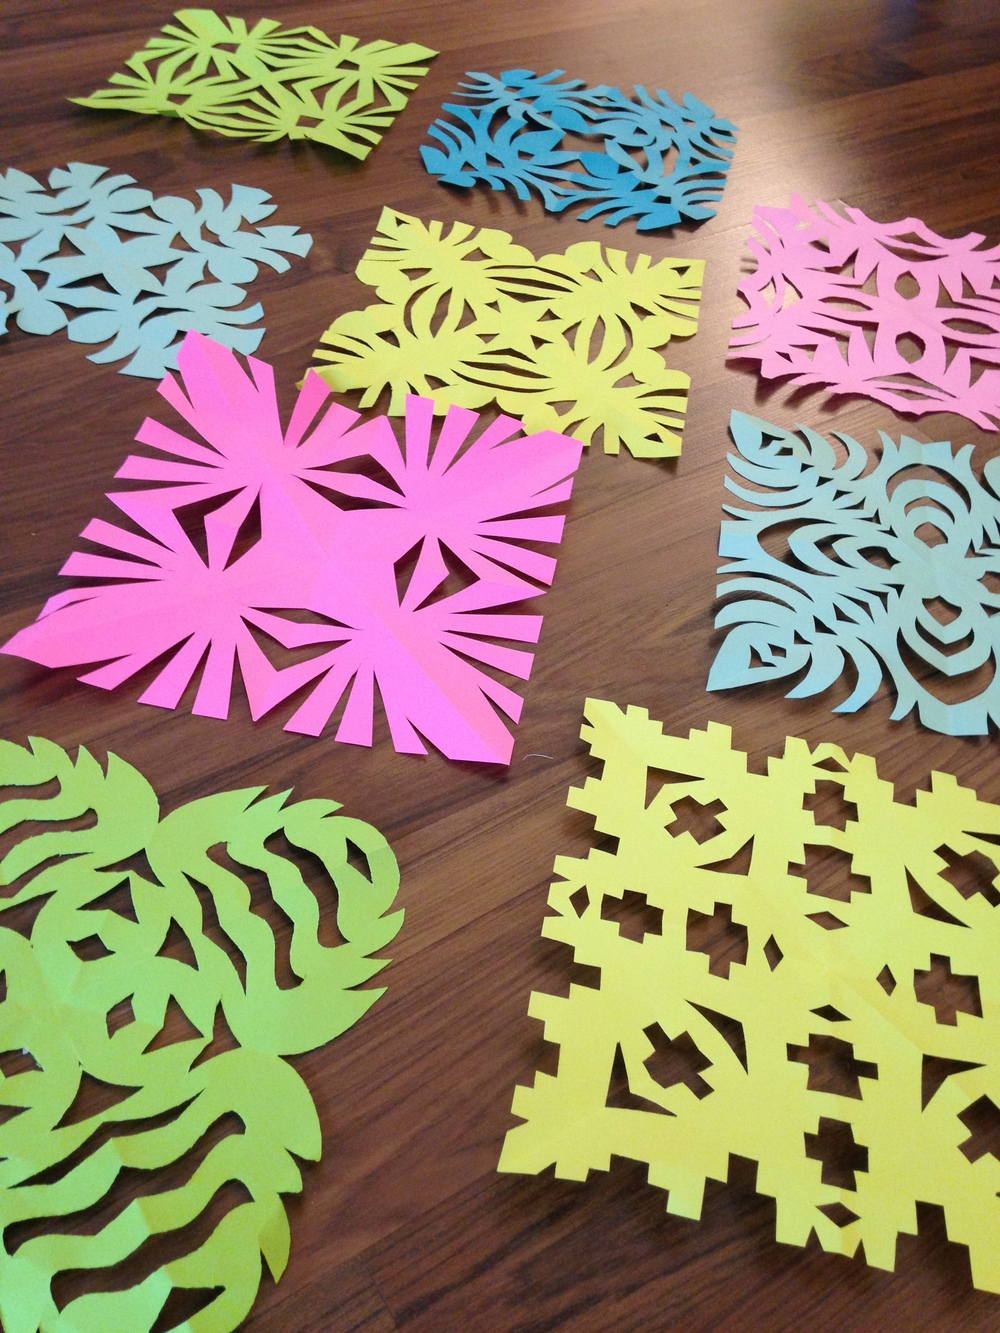 Most recently, the kids and I made snowflakes. These were a fun break from the computer and the sketchbooks and allowed for spontaneous, free expression.